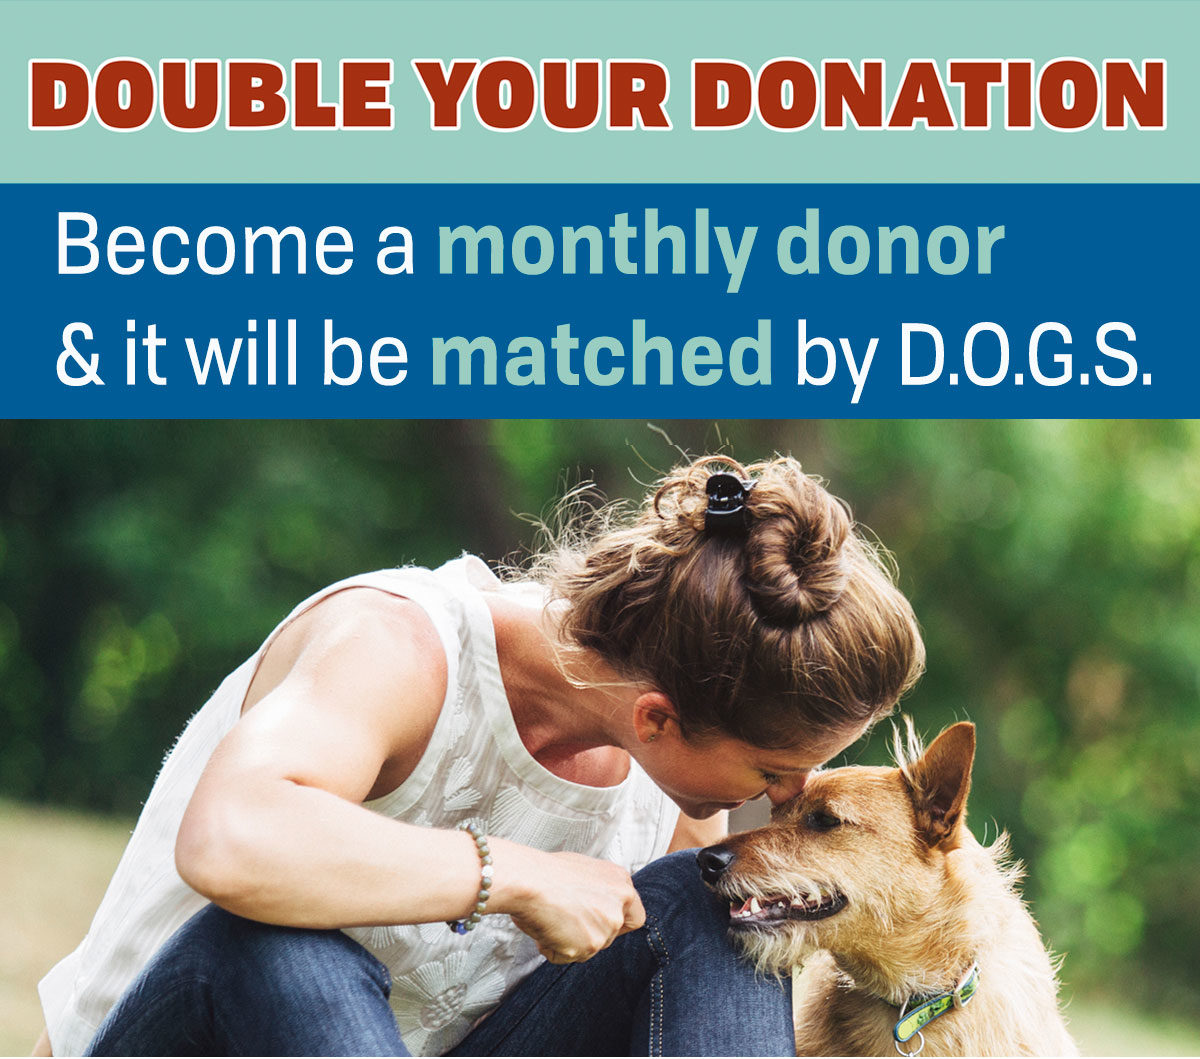 Double your donation. Become a monthly donor & it will be matched by D.O.G.S.